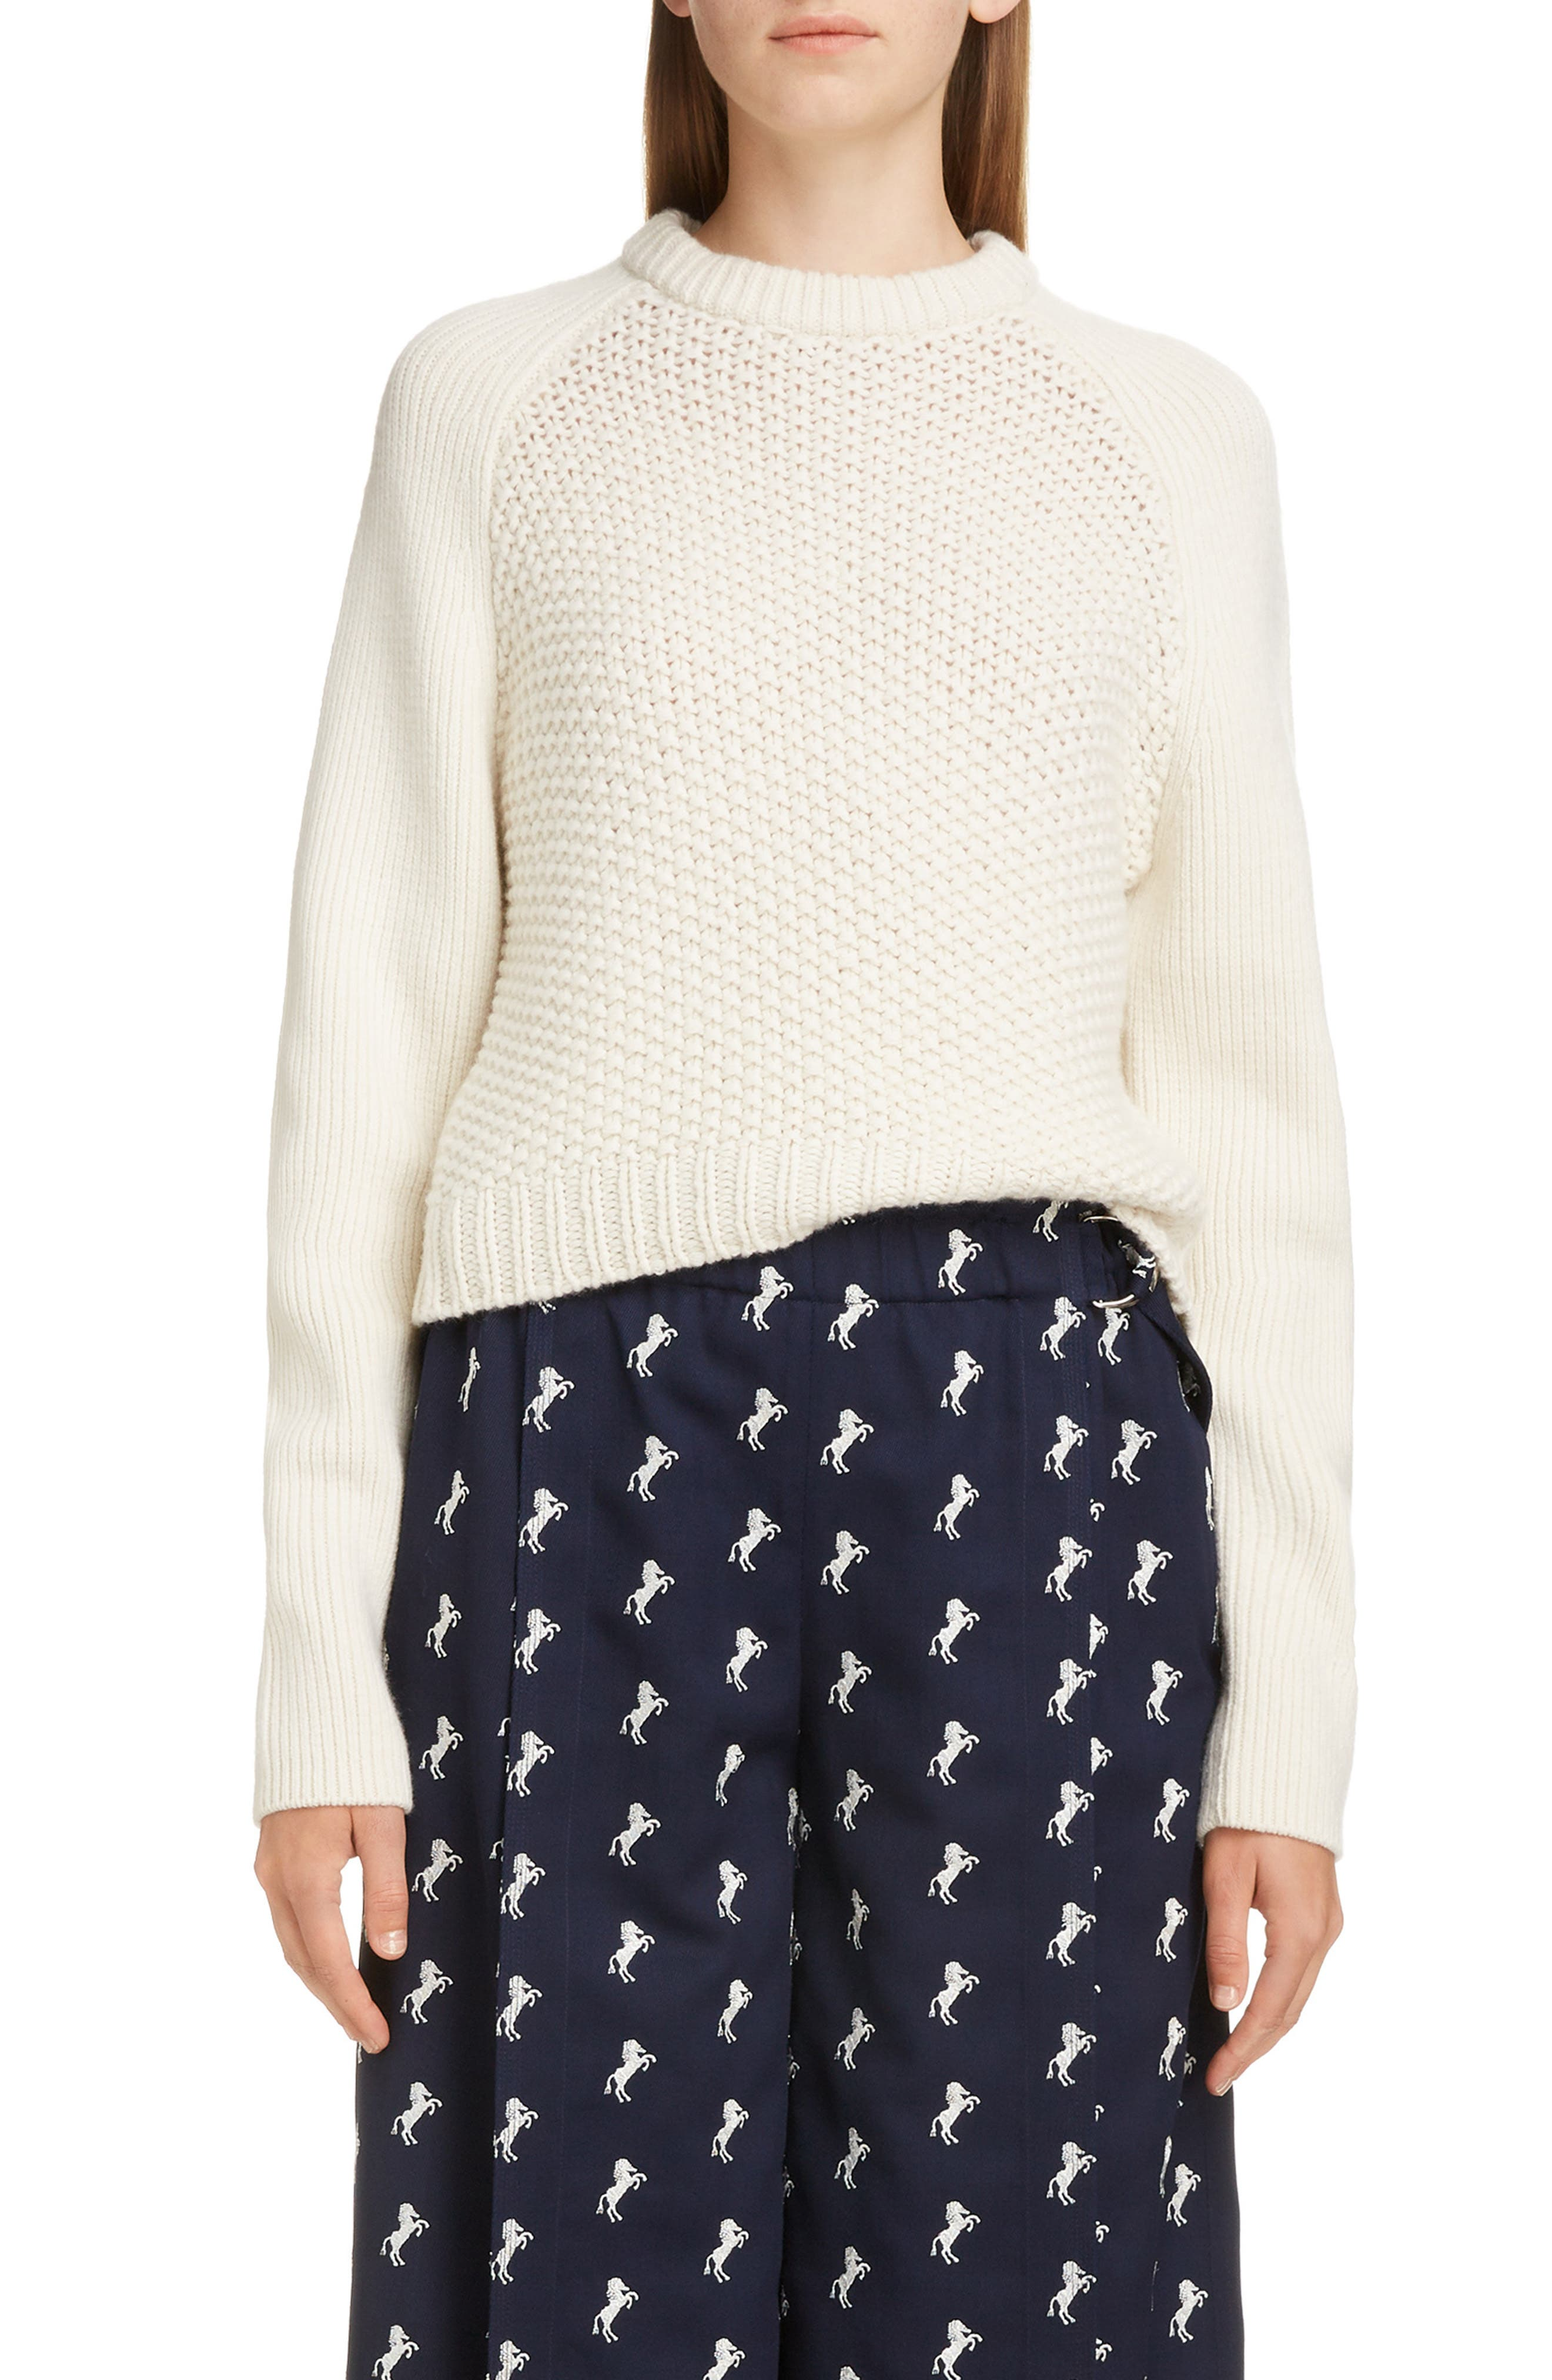 Chloe Mixed Knit Wool & Cashmere Blend Sweater